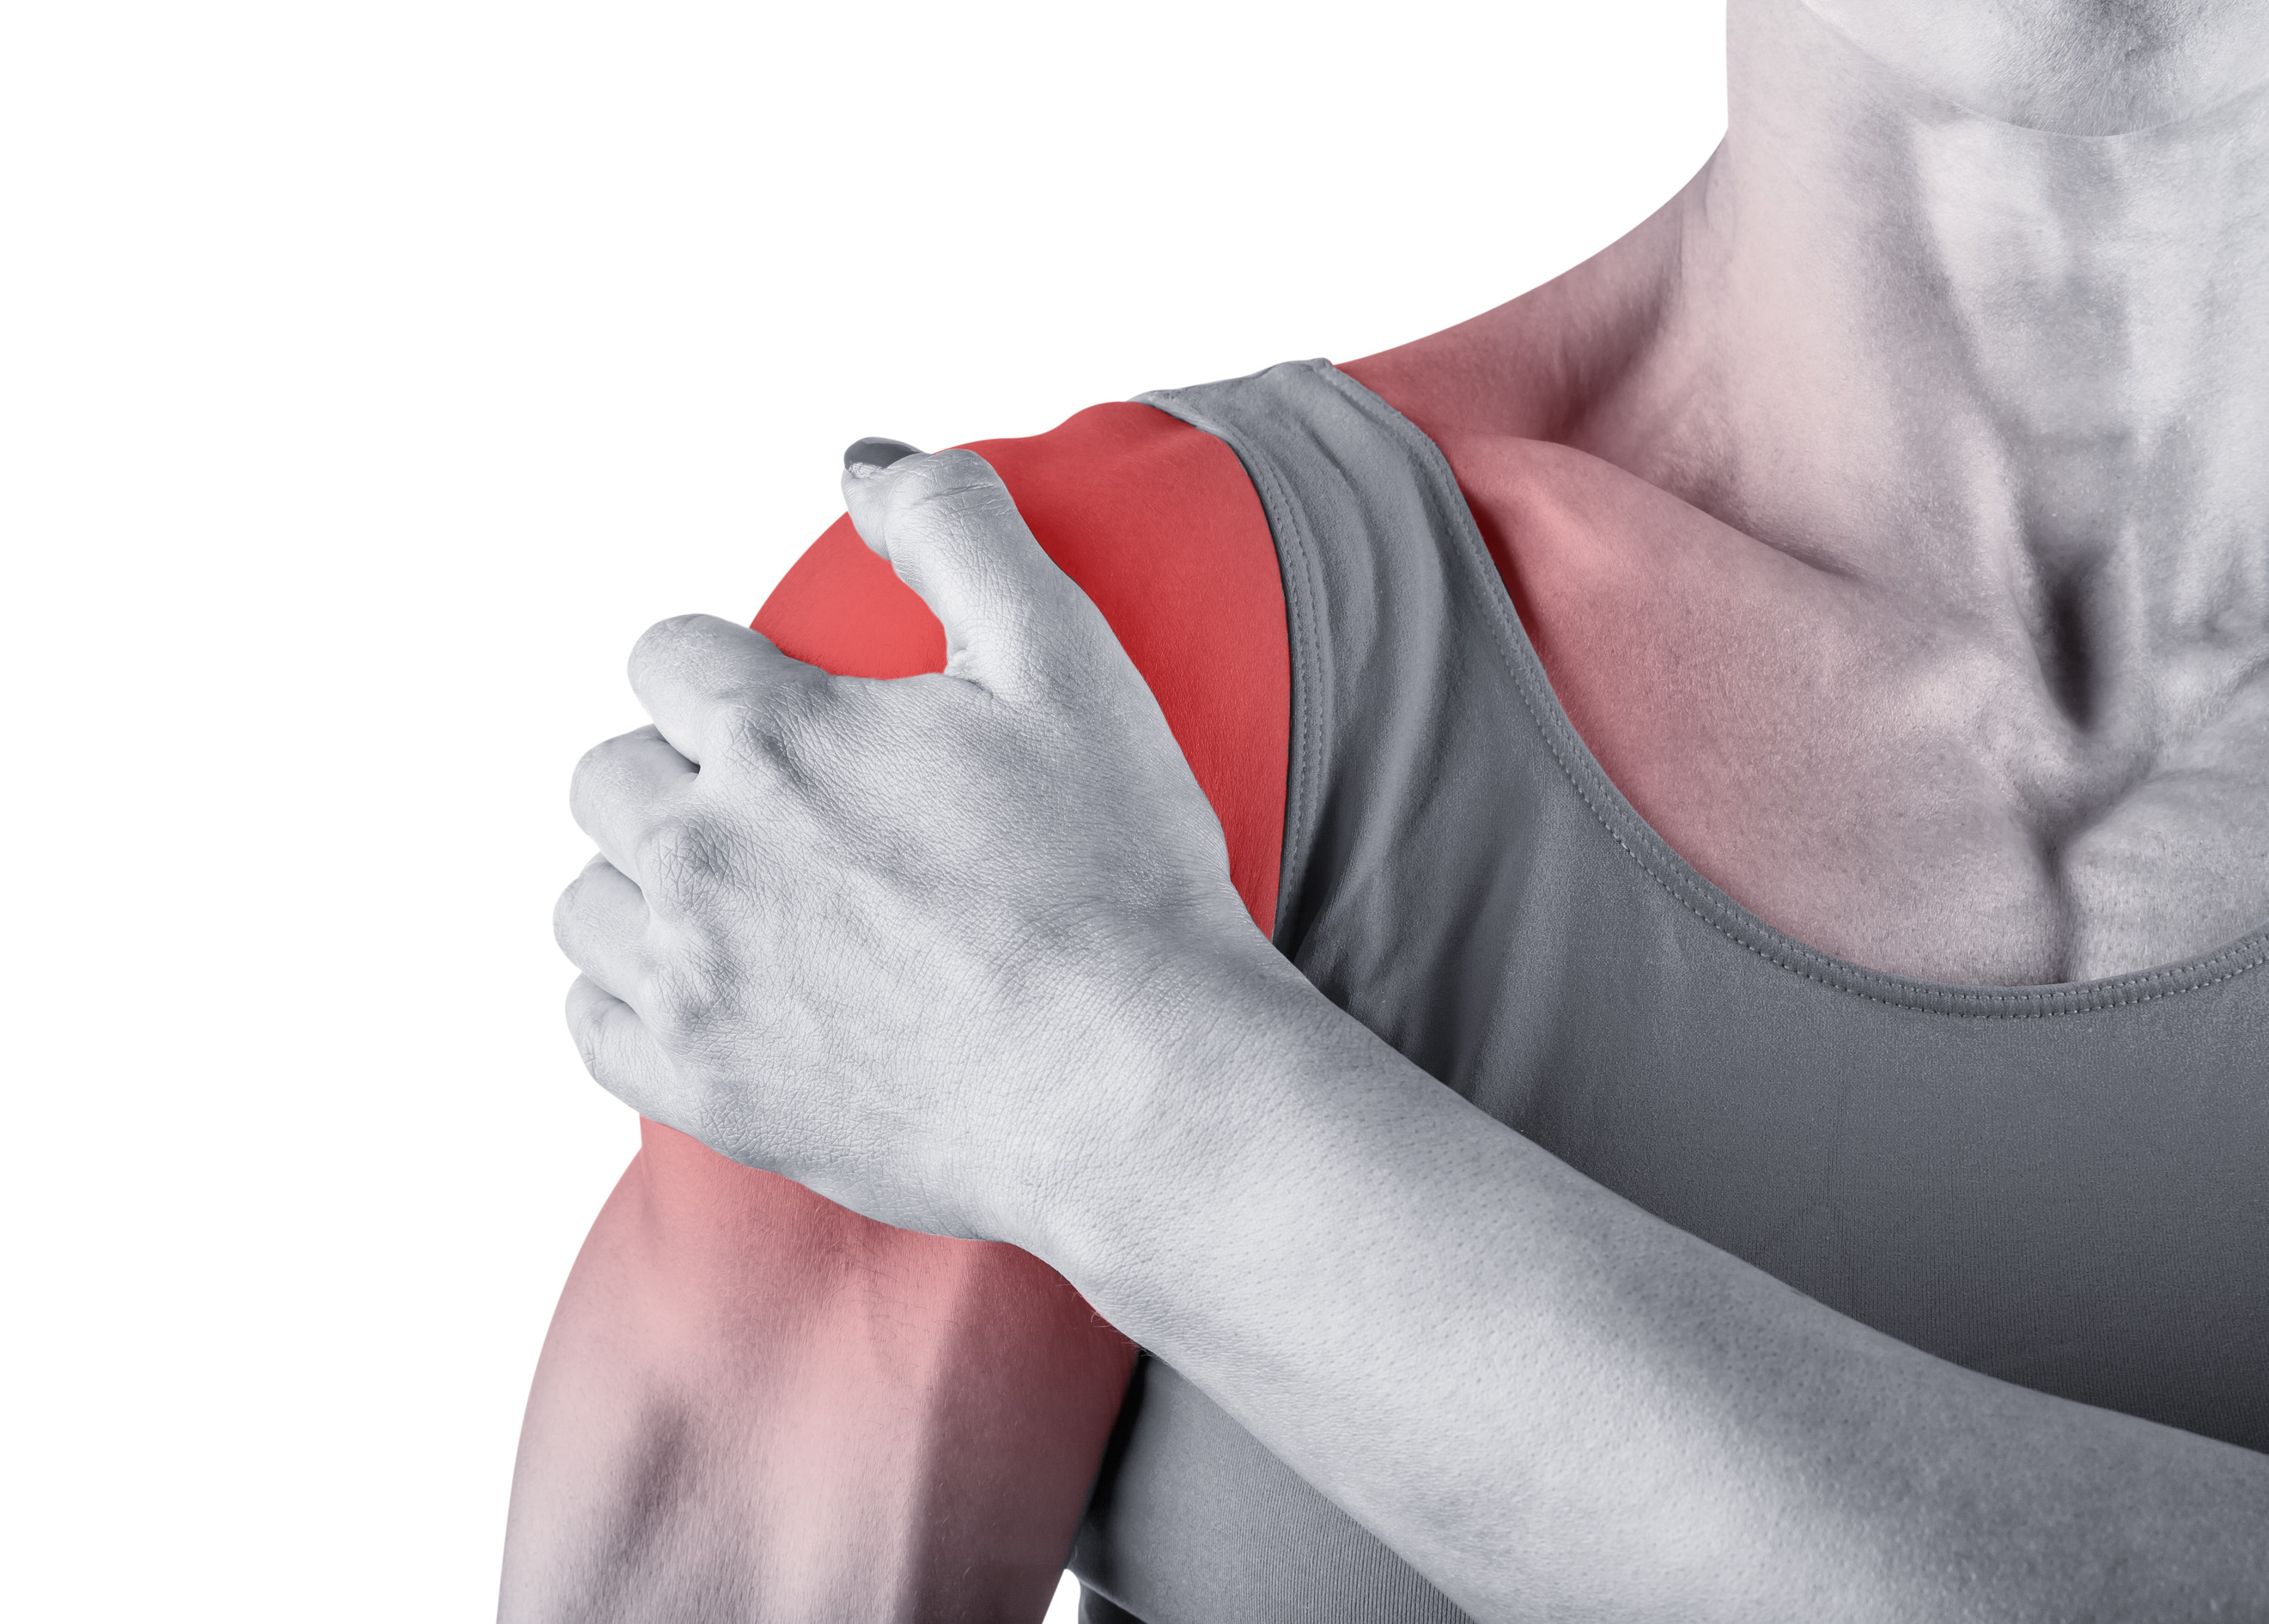 Shoulder Injuries in Sports